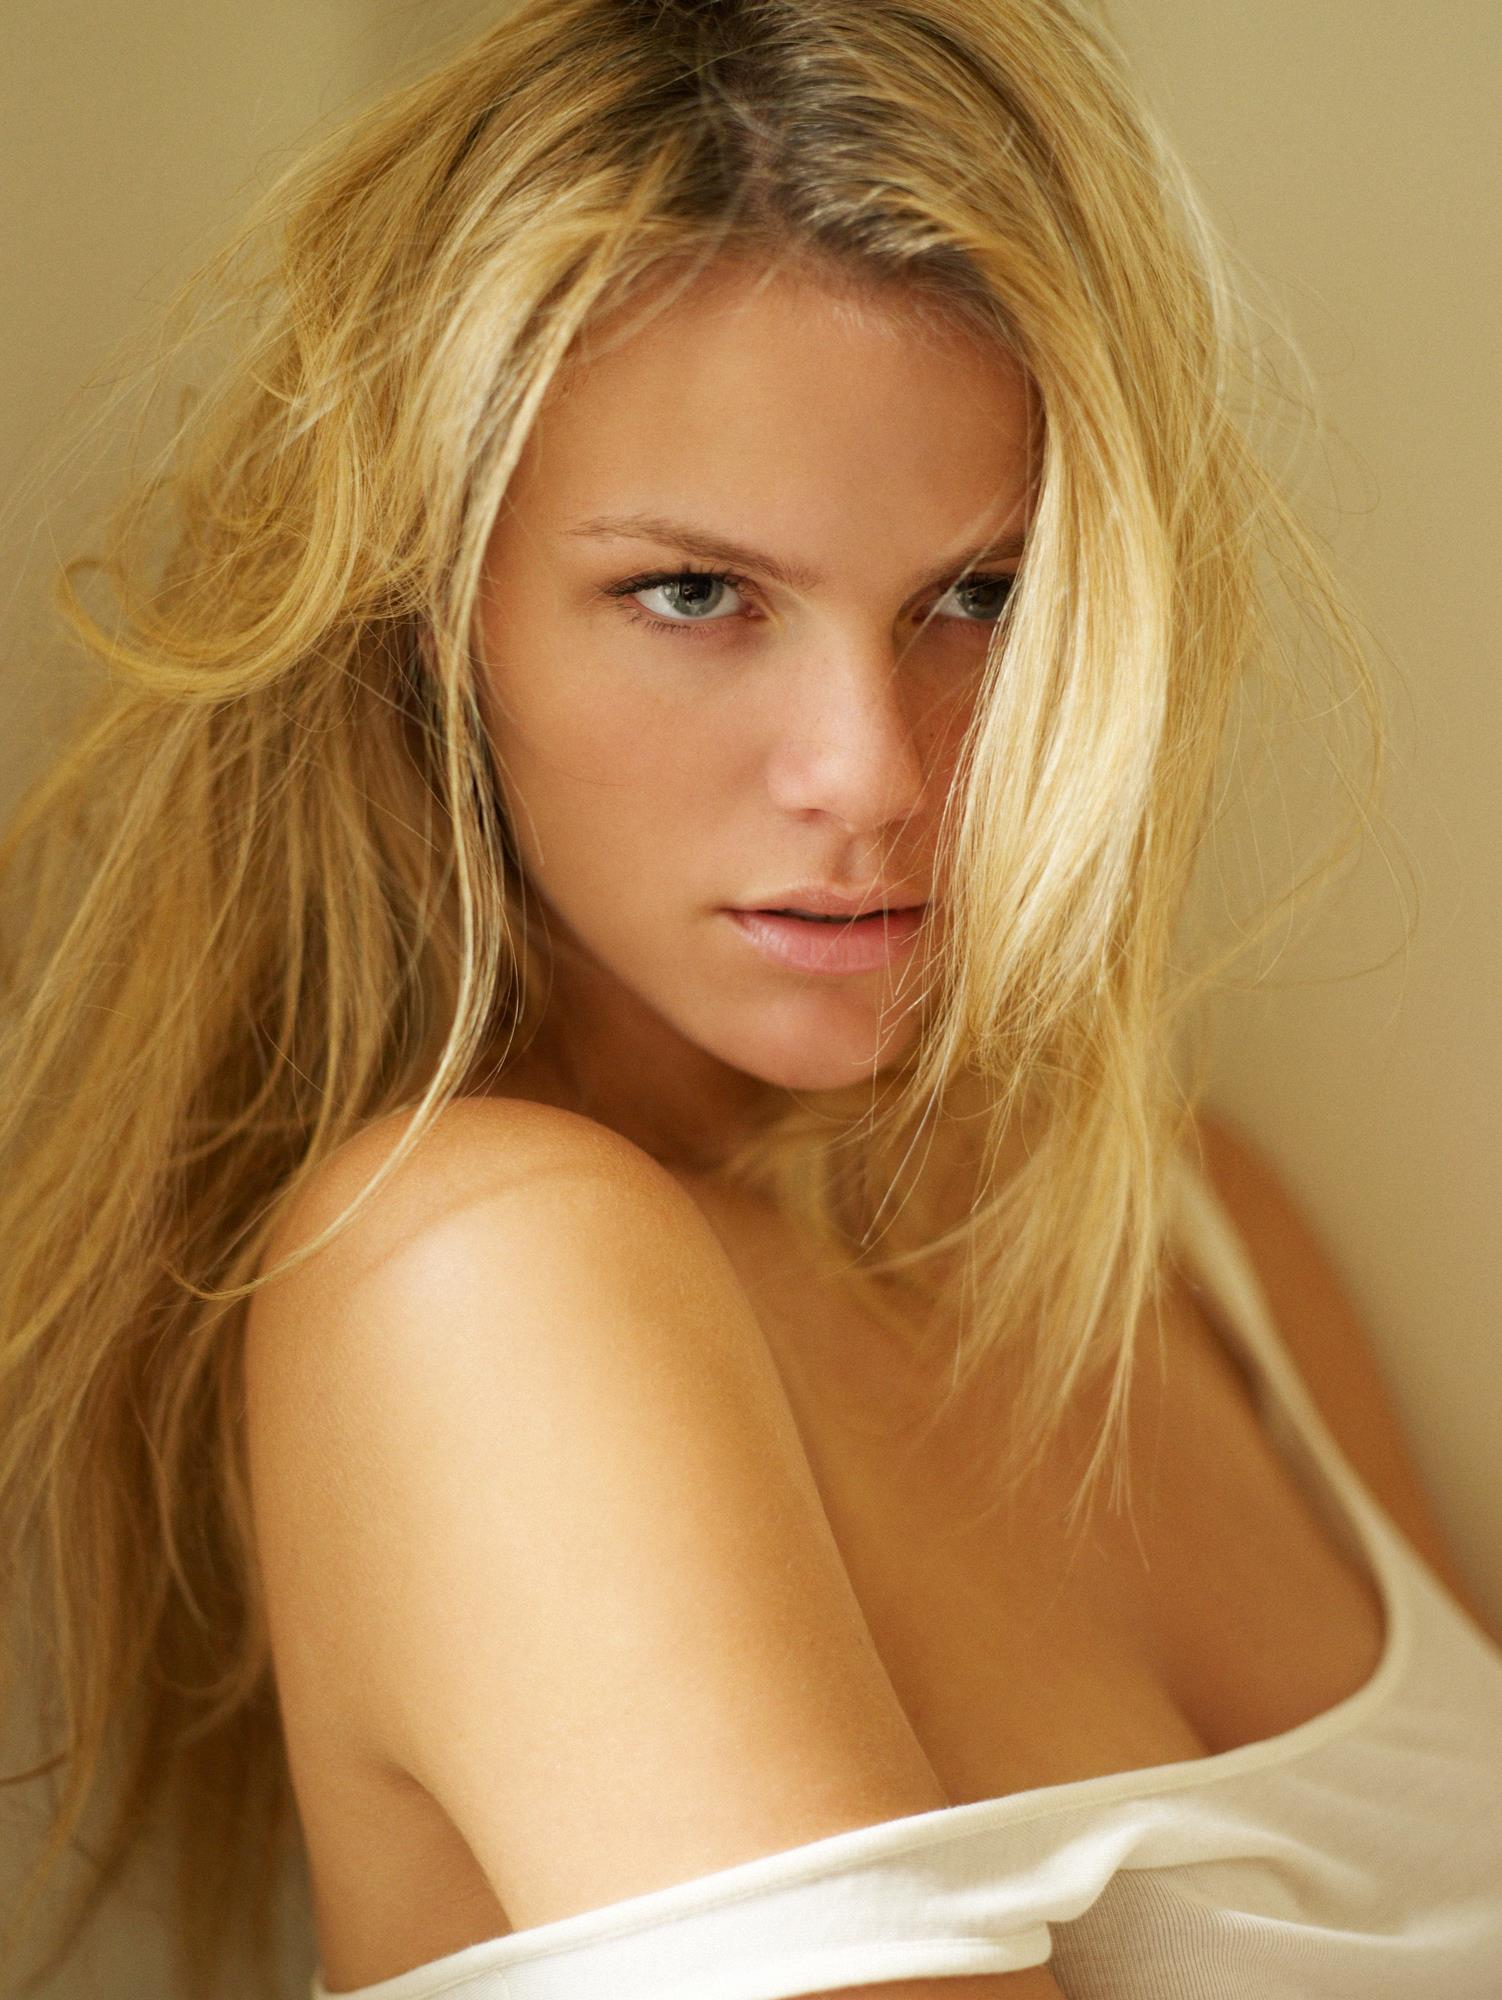 Apologise, but, Brooklyn decker hot sorry